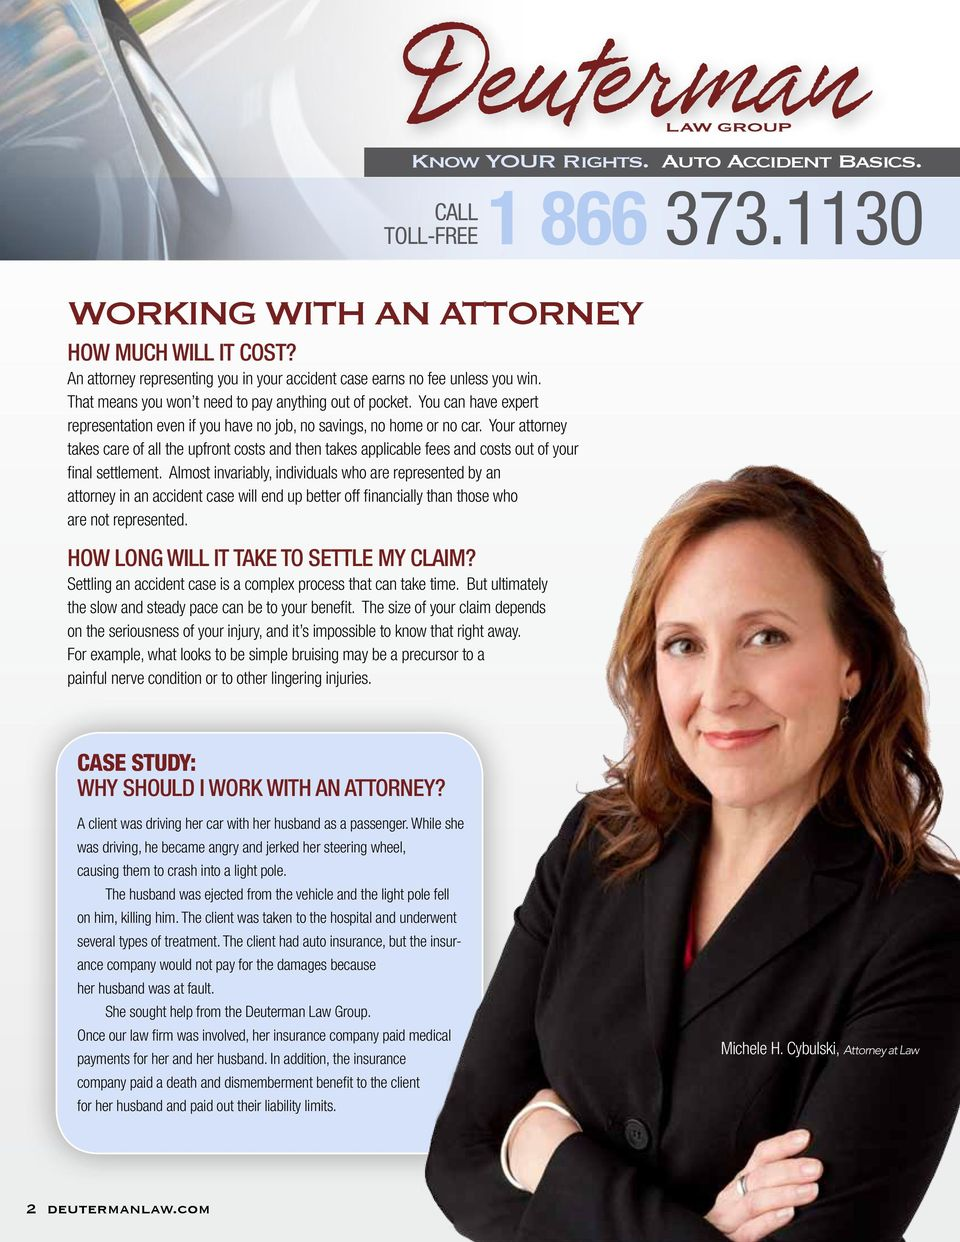 Your attorney takes care of all the upfront costs and then takes applicable fees and costs out of your final settlement.